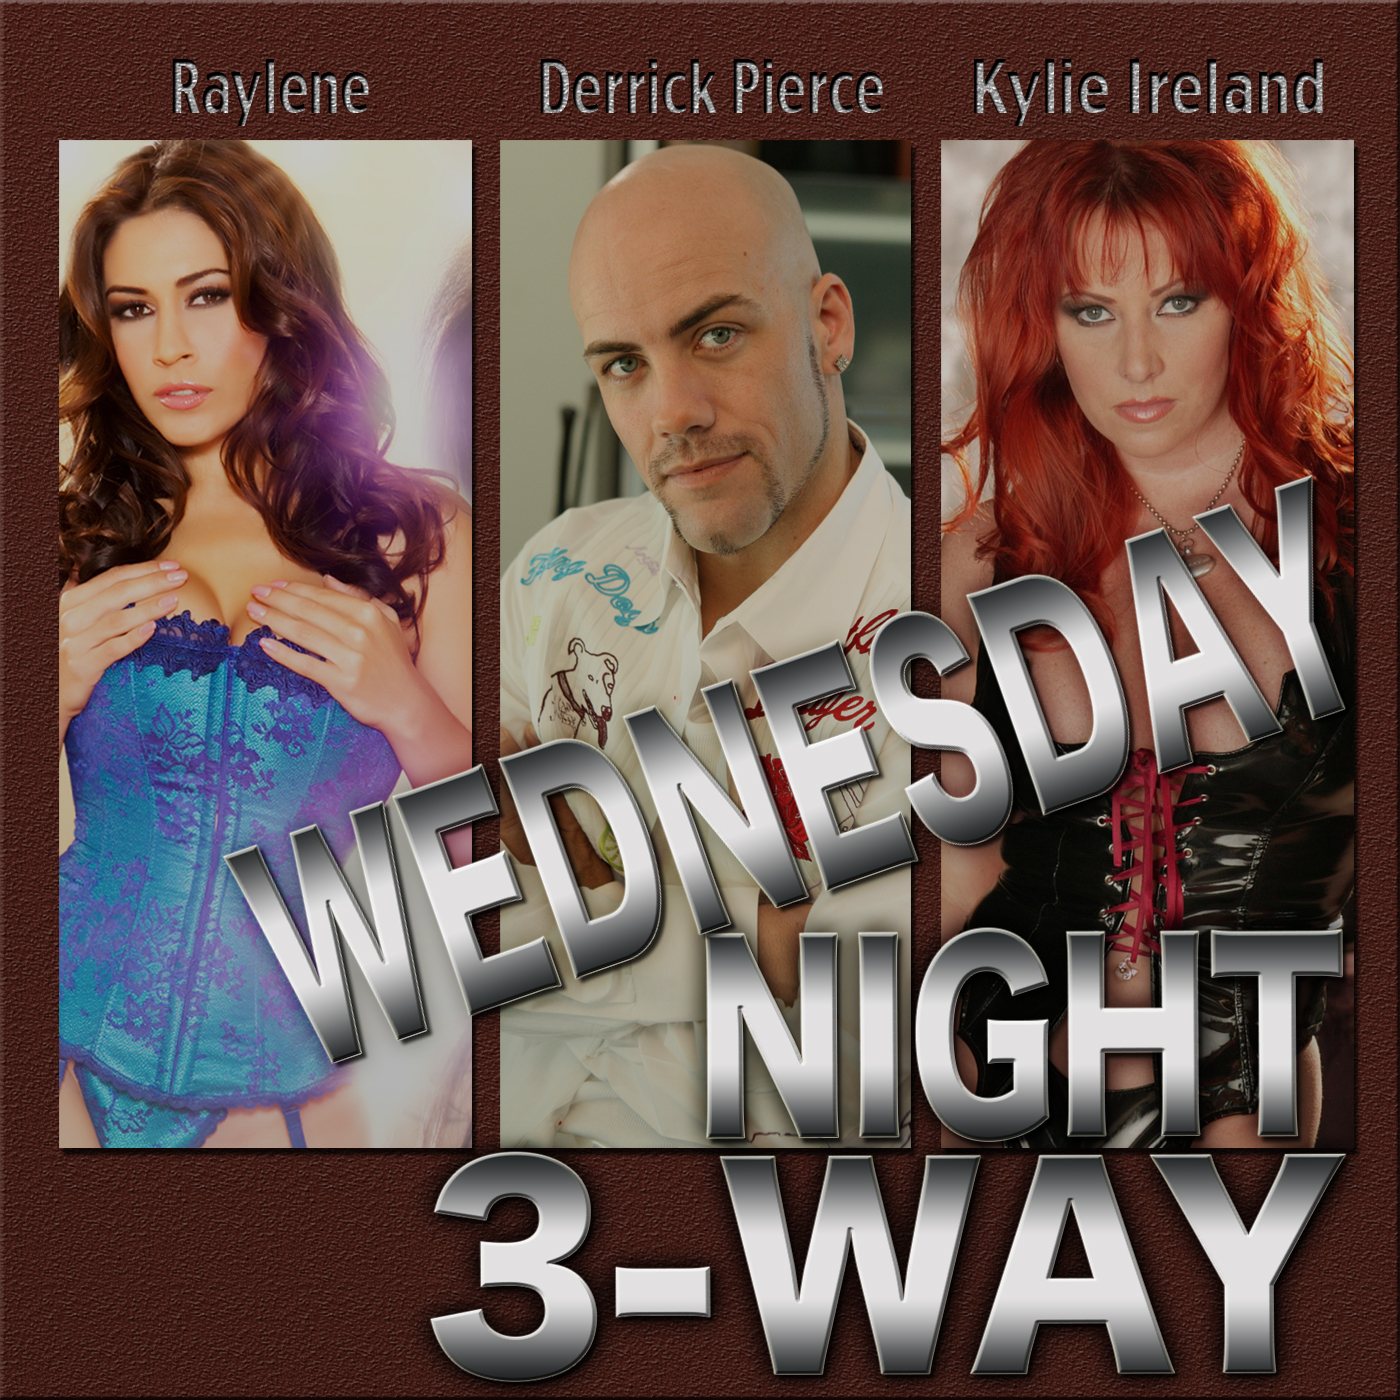 Wednesday Night 3-Way Podcast